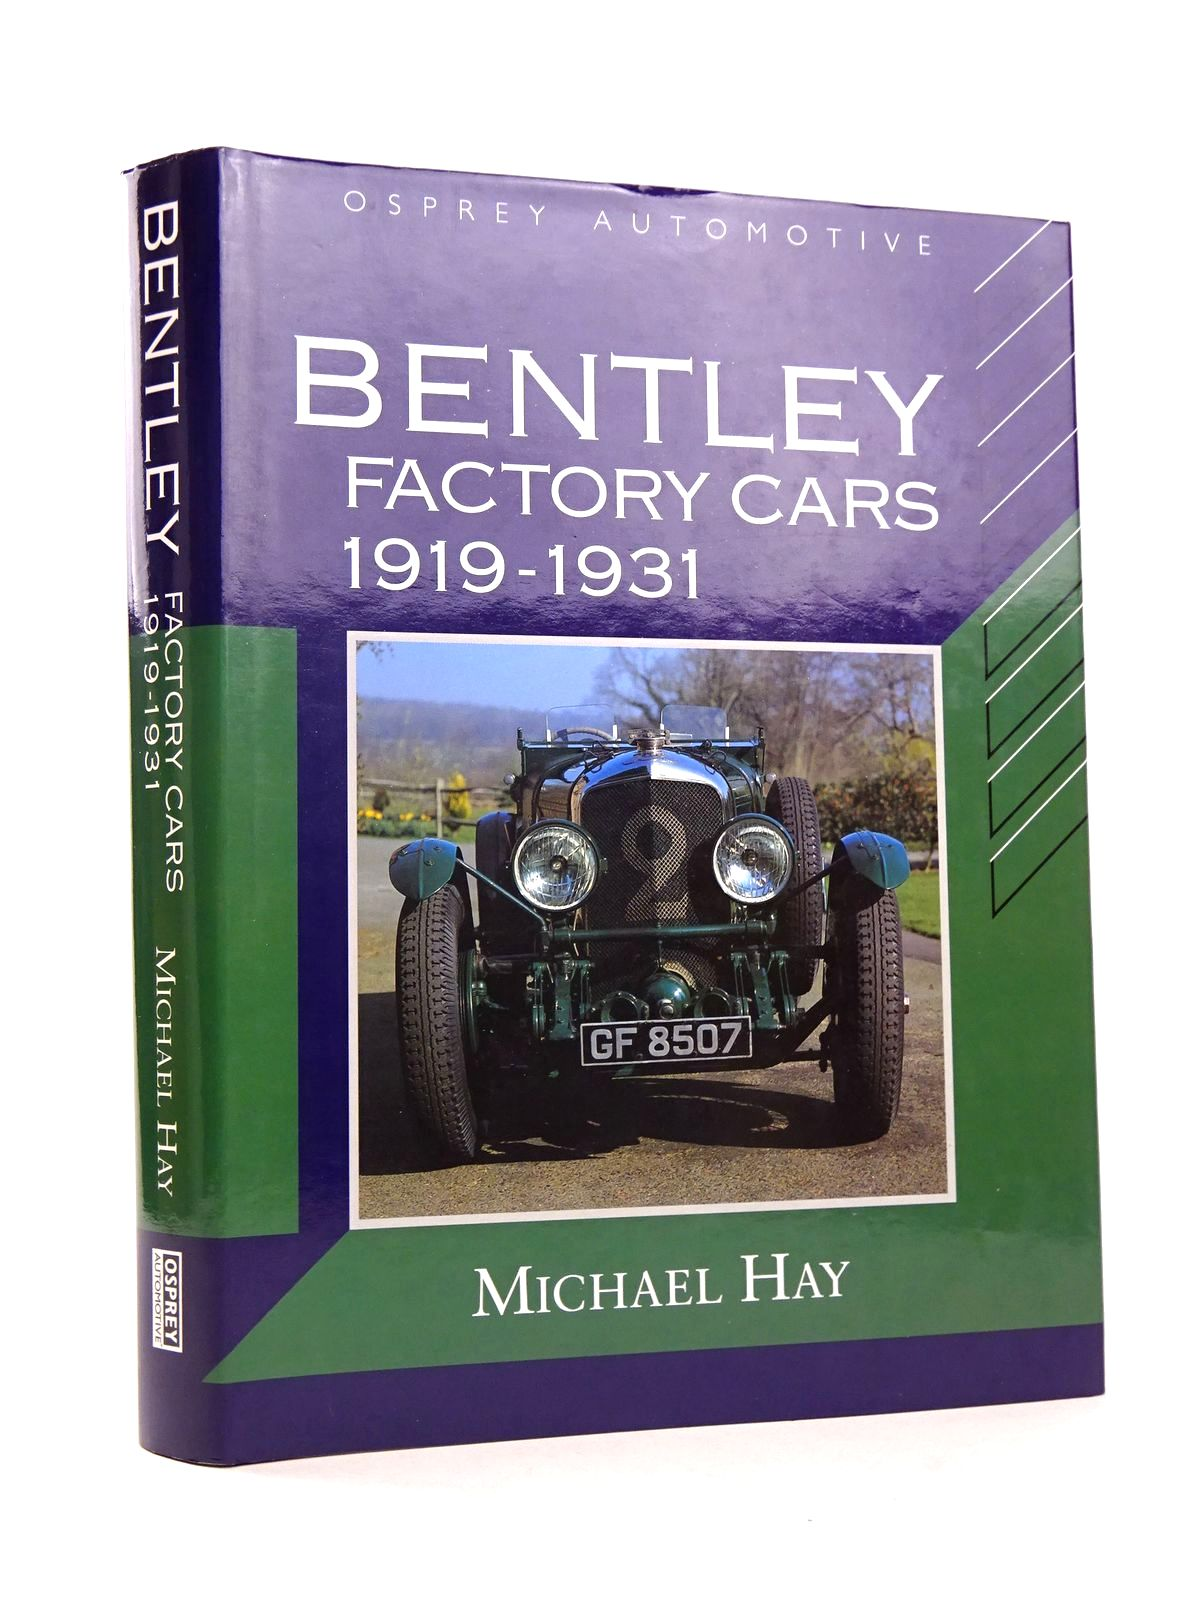 Photo of BENTLEY FACTORY CARS 1919-1931 written by Hay, Michael published by Osprey Automotive (STOCK CODE: 1818496)  for sale by Stella & Rose's Books